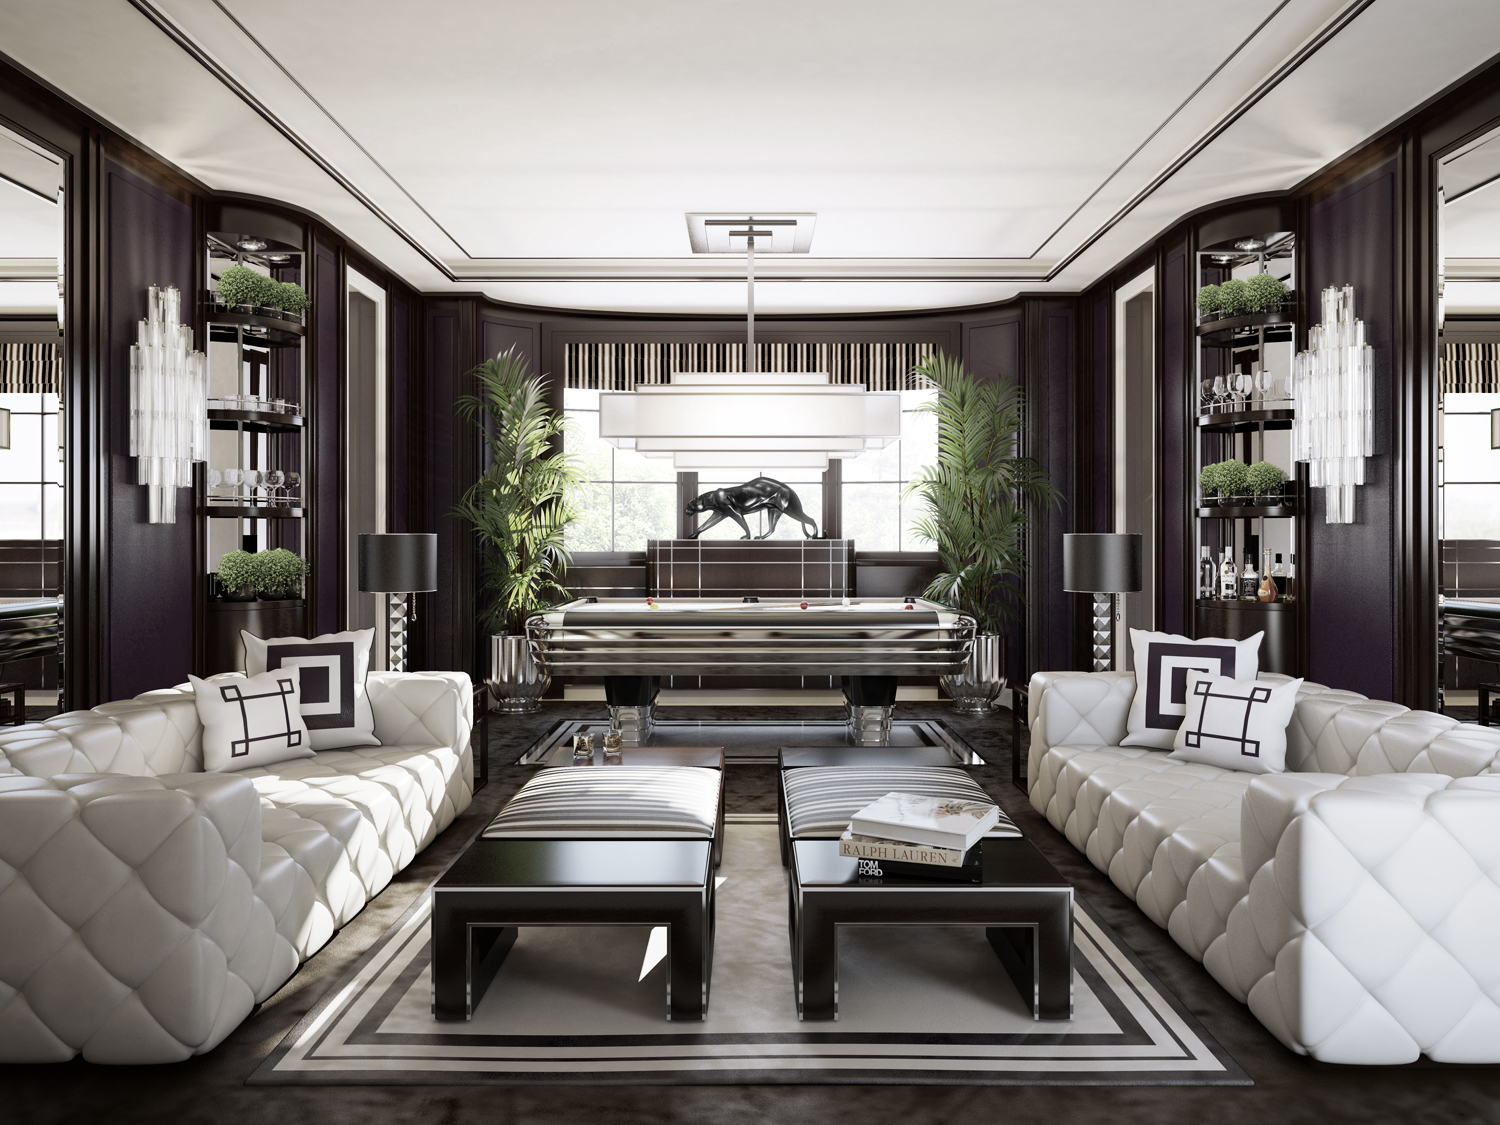 Architectural visualisation for High end interior design